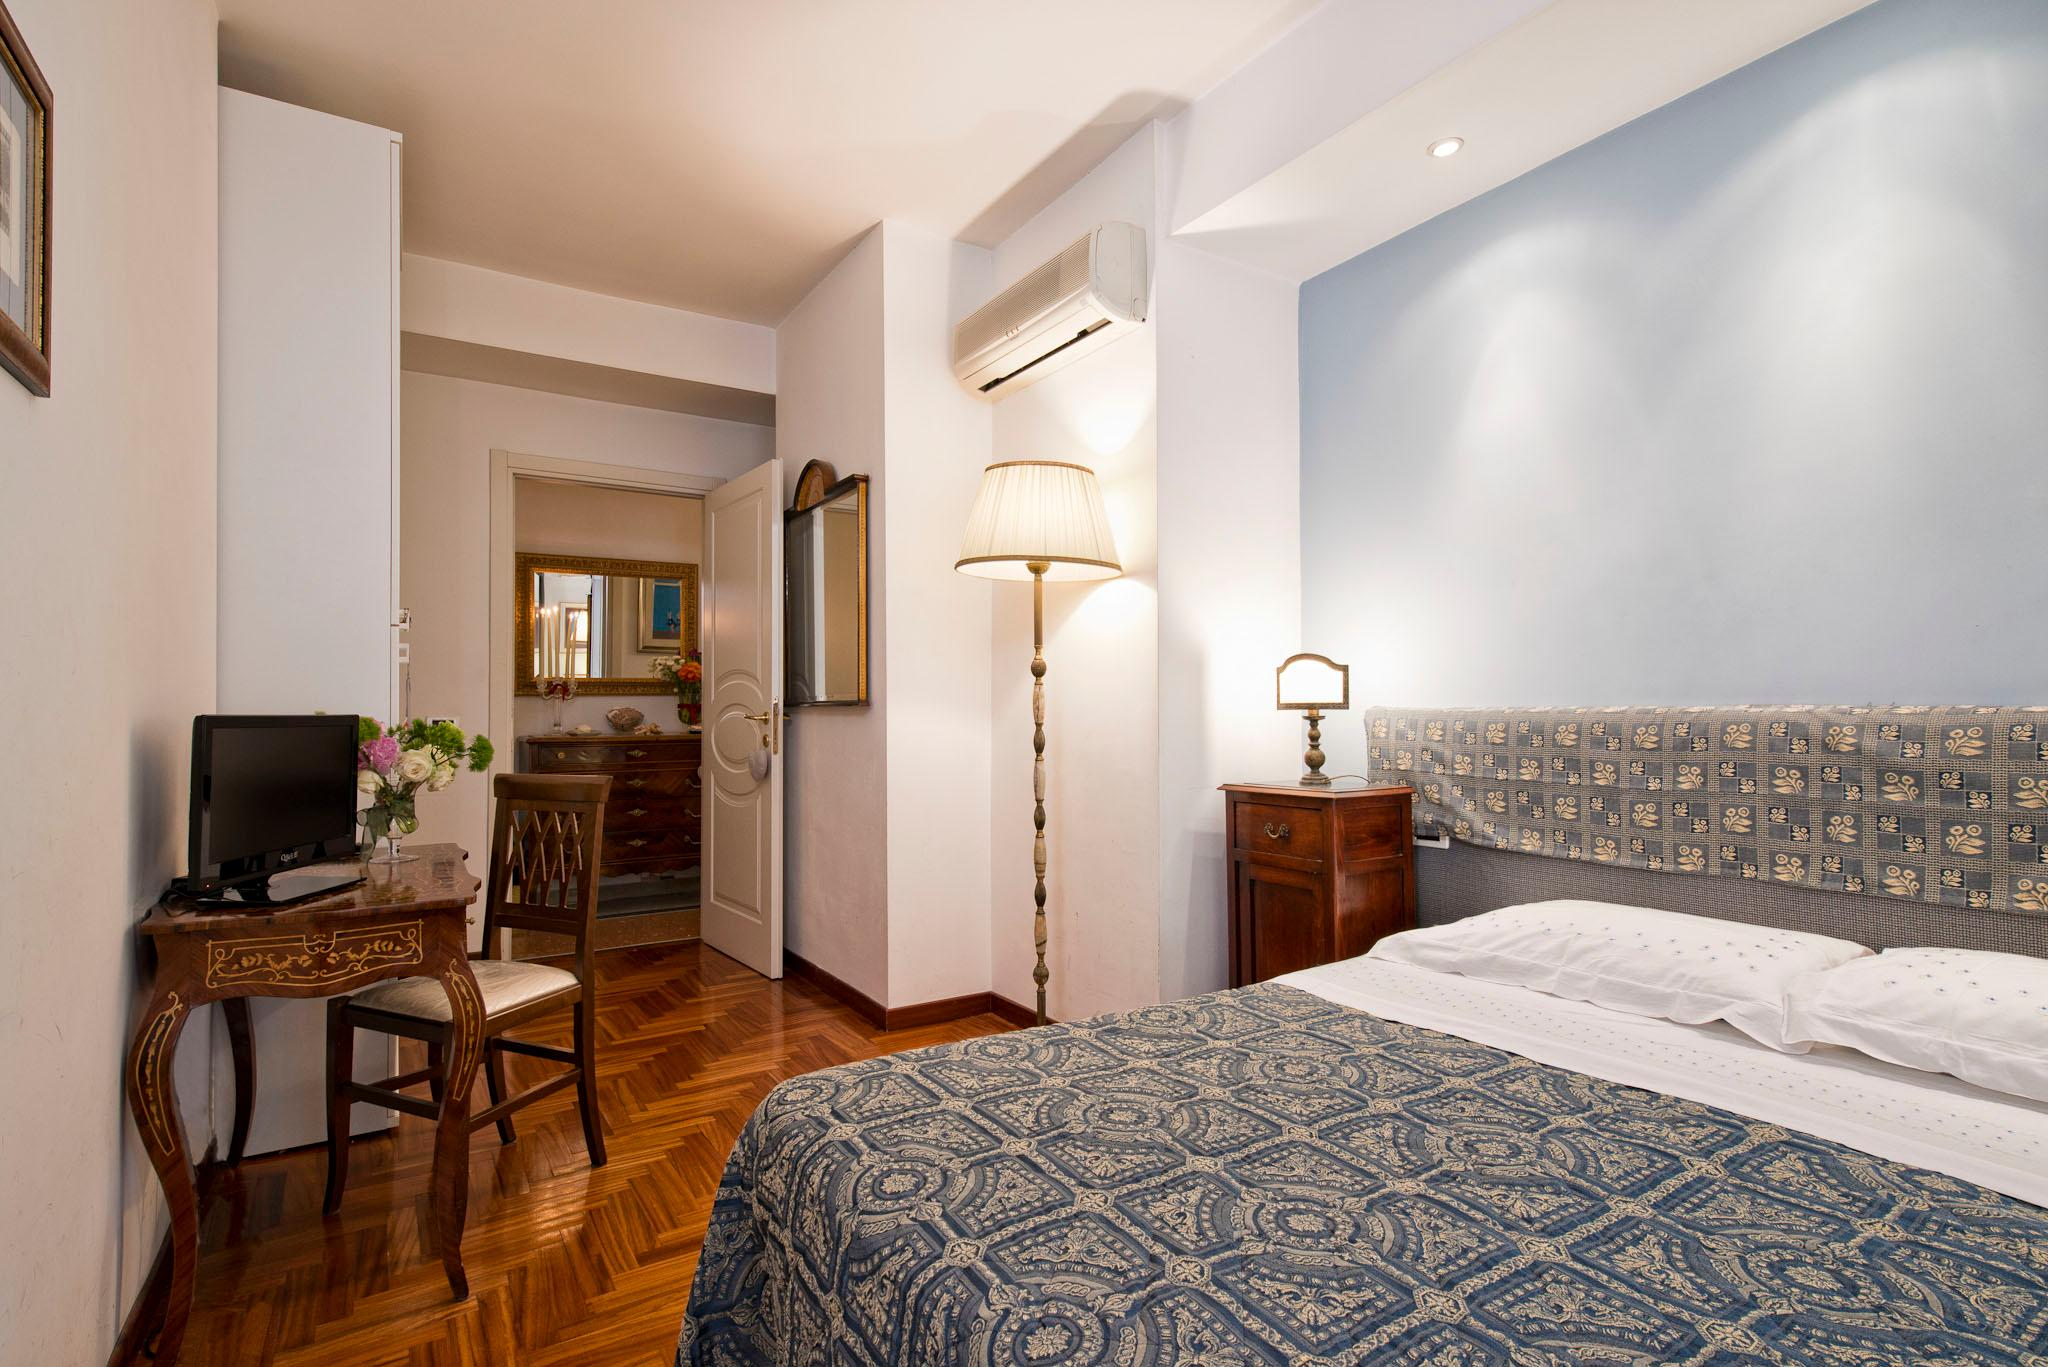 Le Sibille Bed and Breakfast